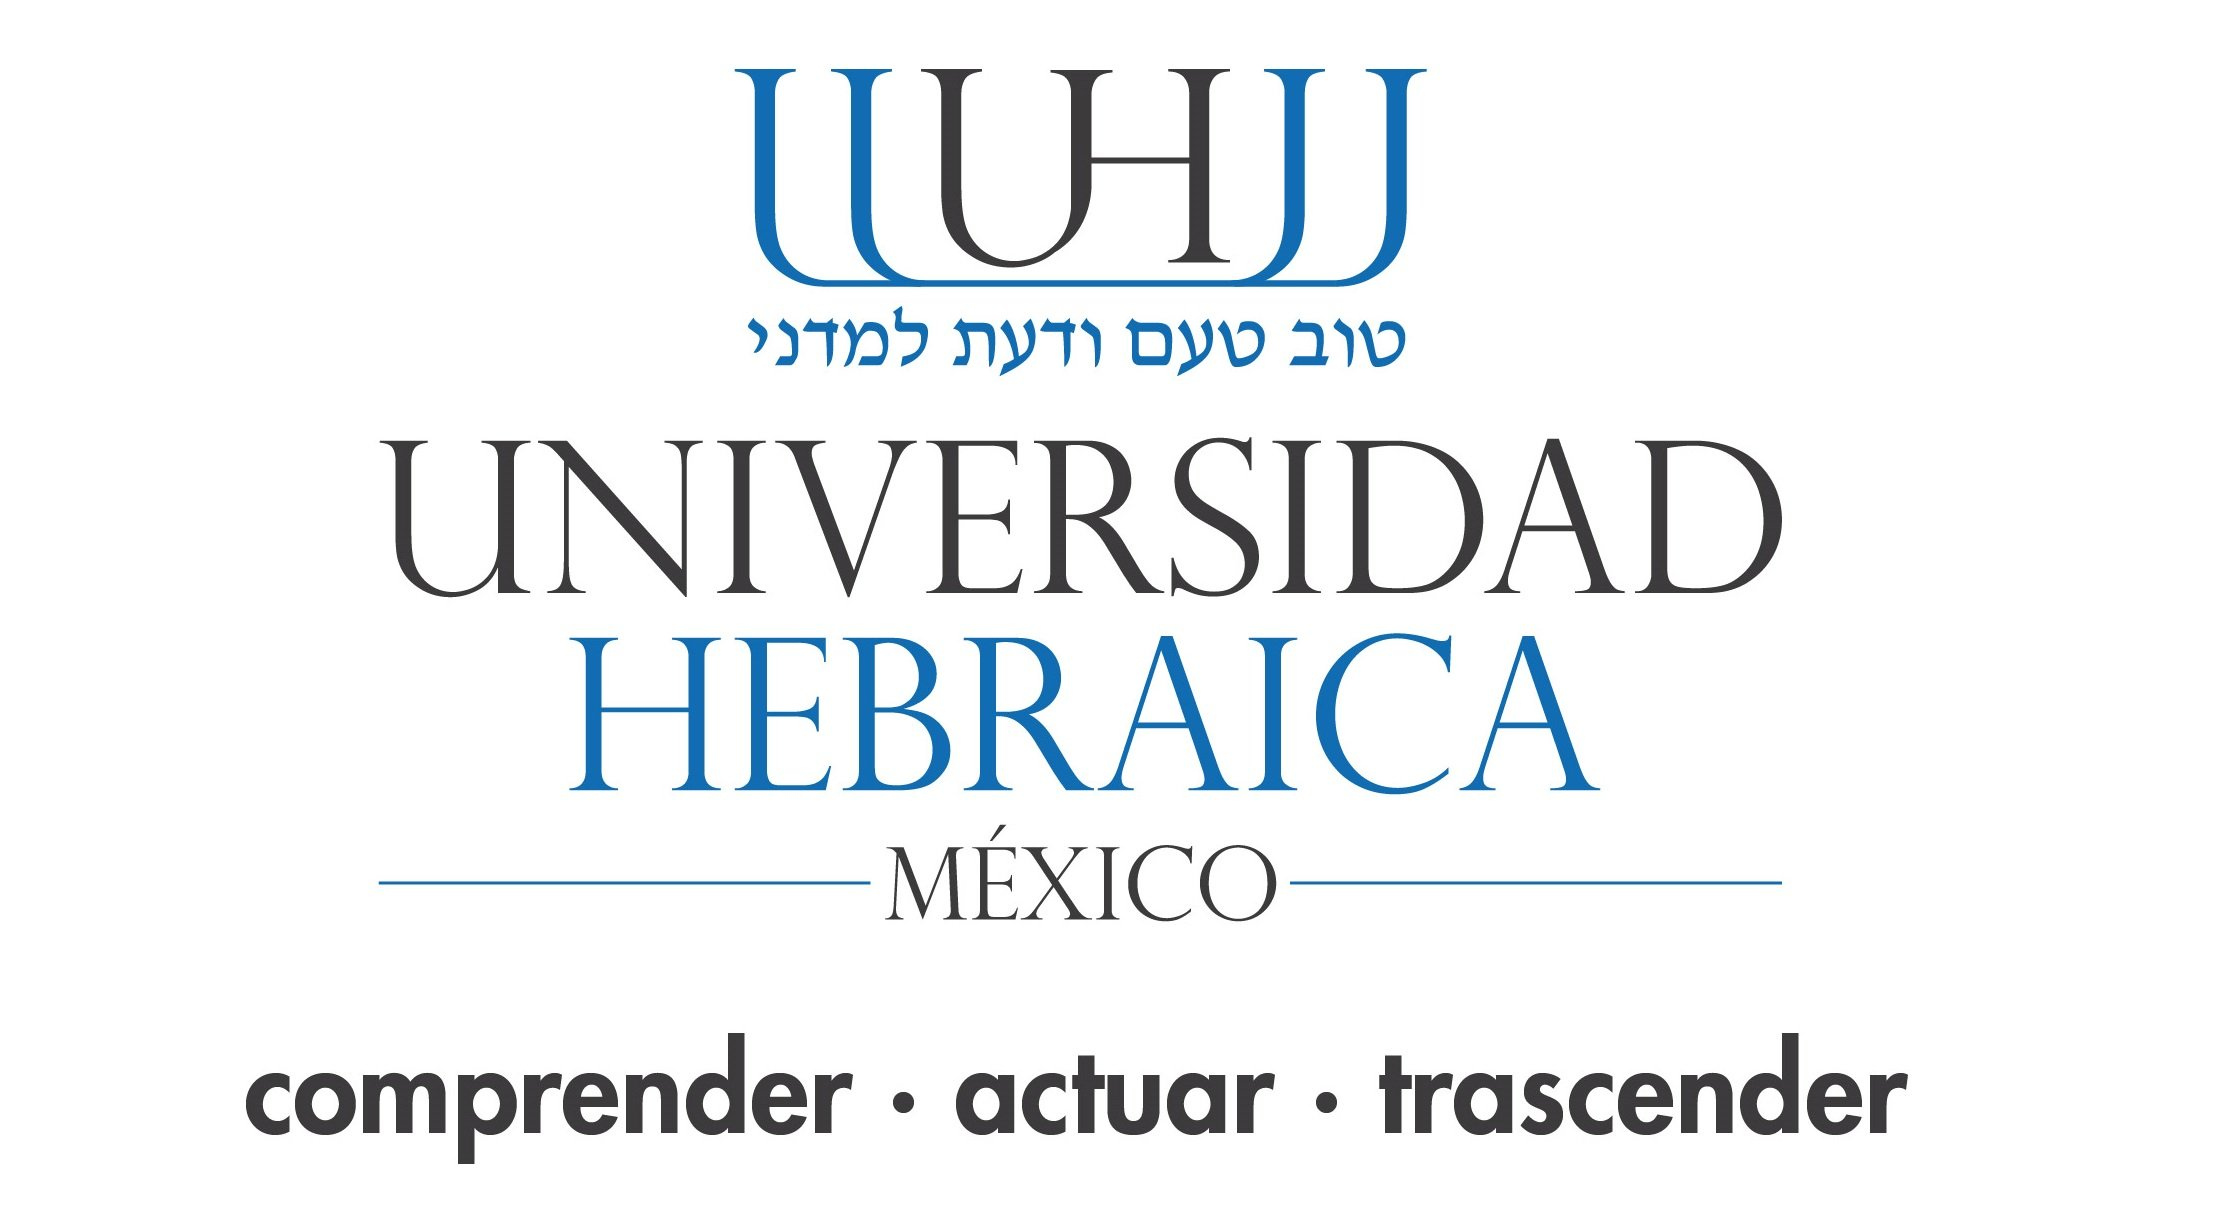 UNIVERSIDAD HEBRAICA